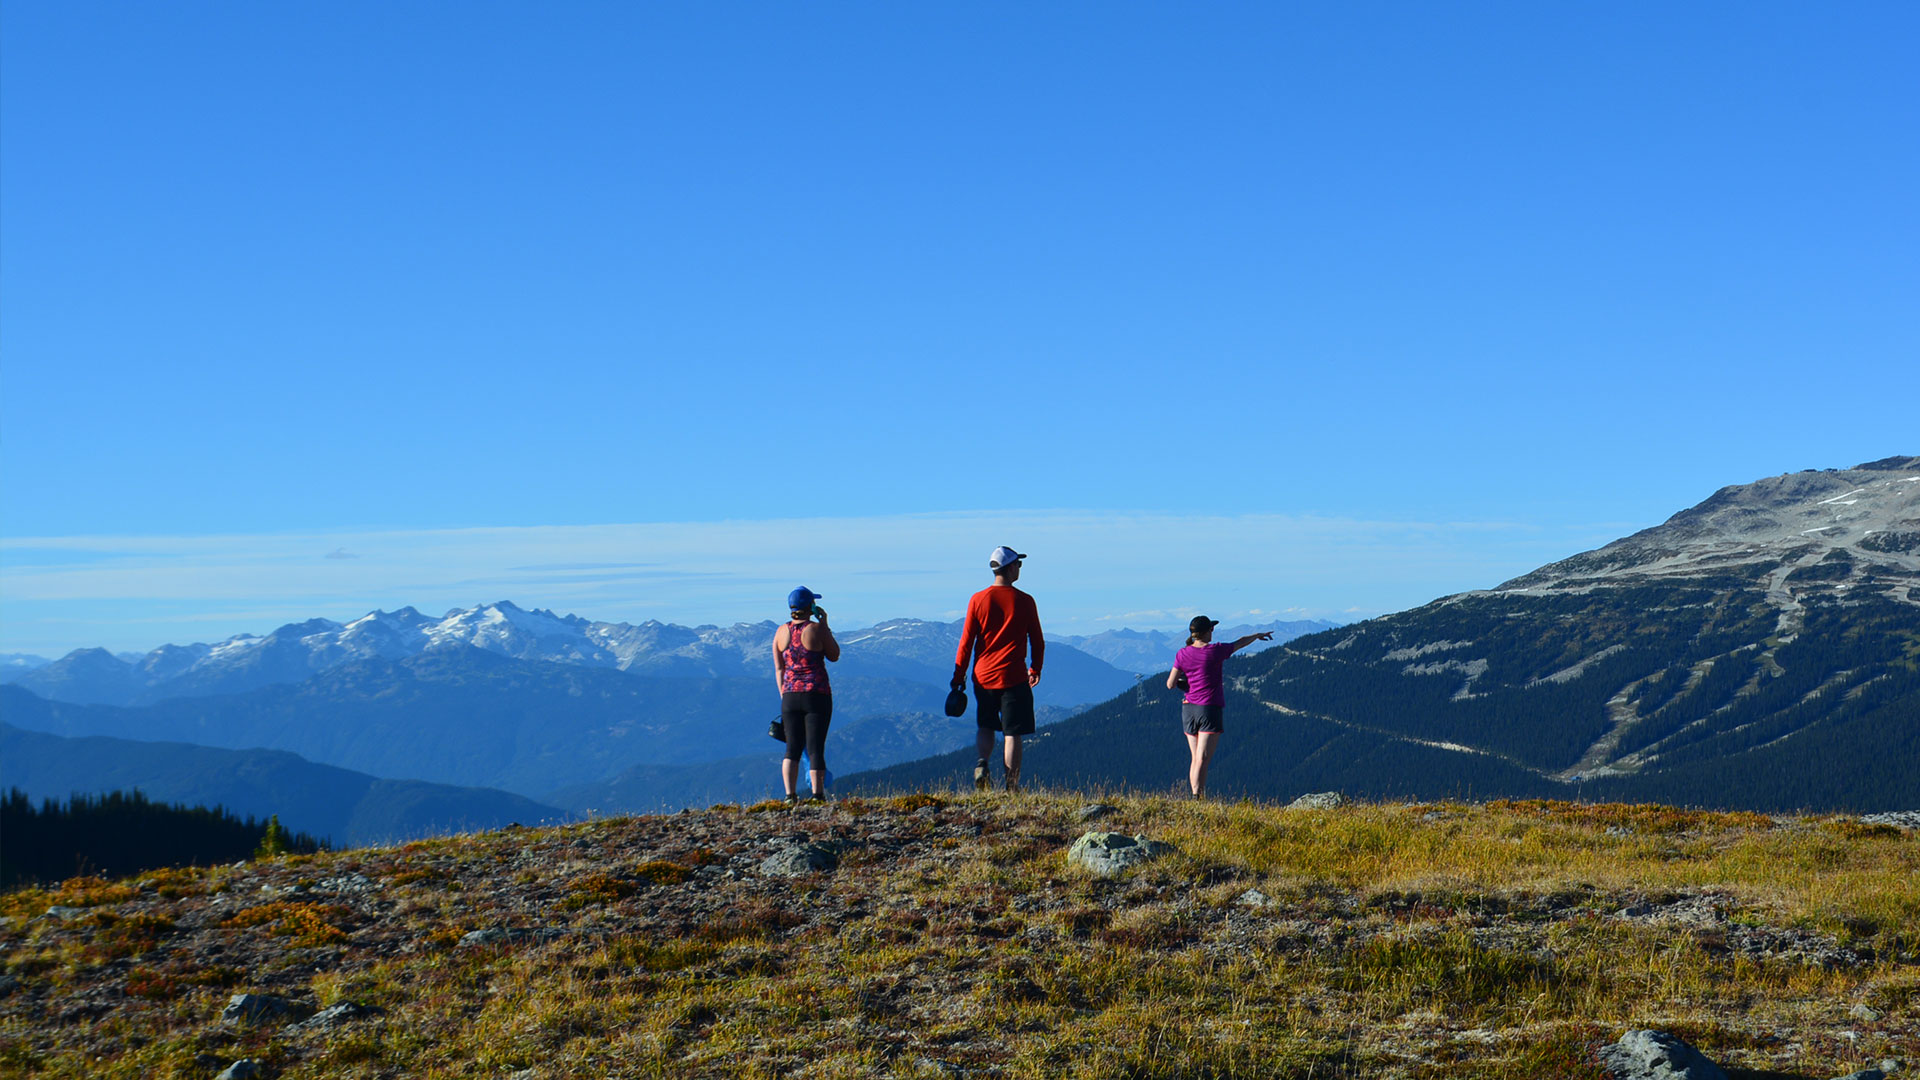 Hiking in an alpine setting on whistler mountain